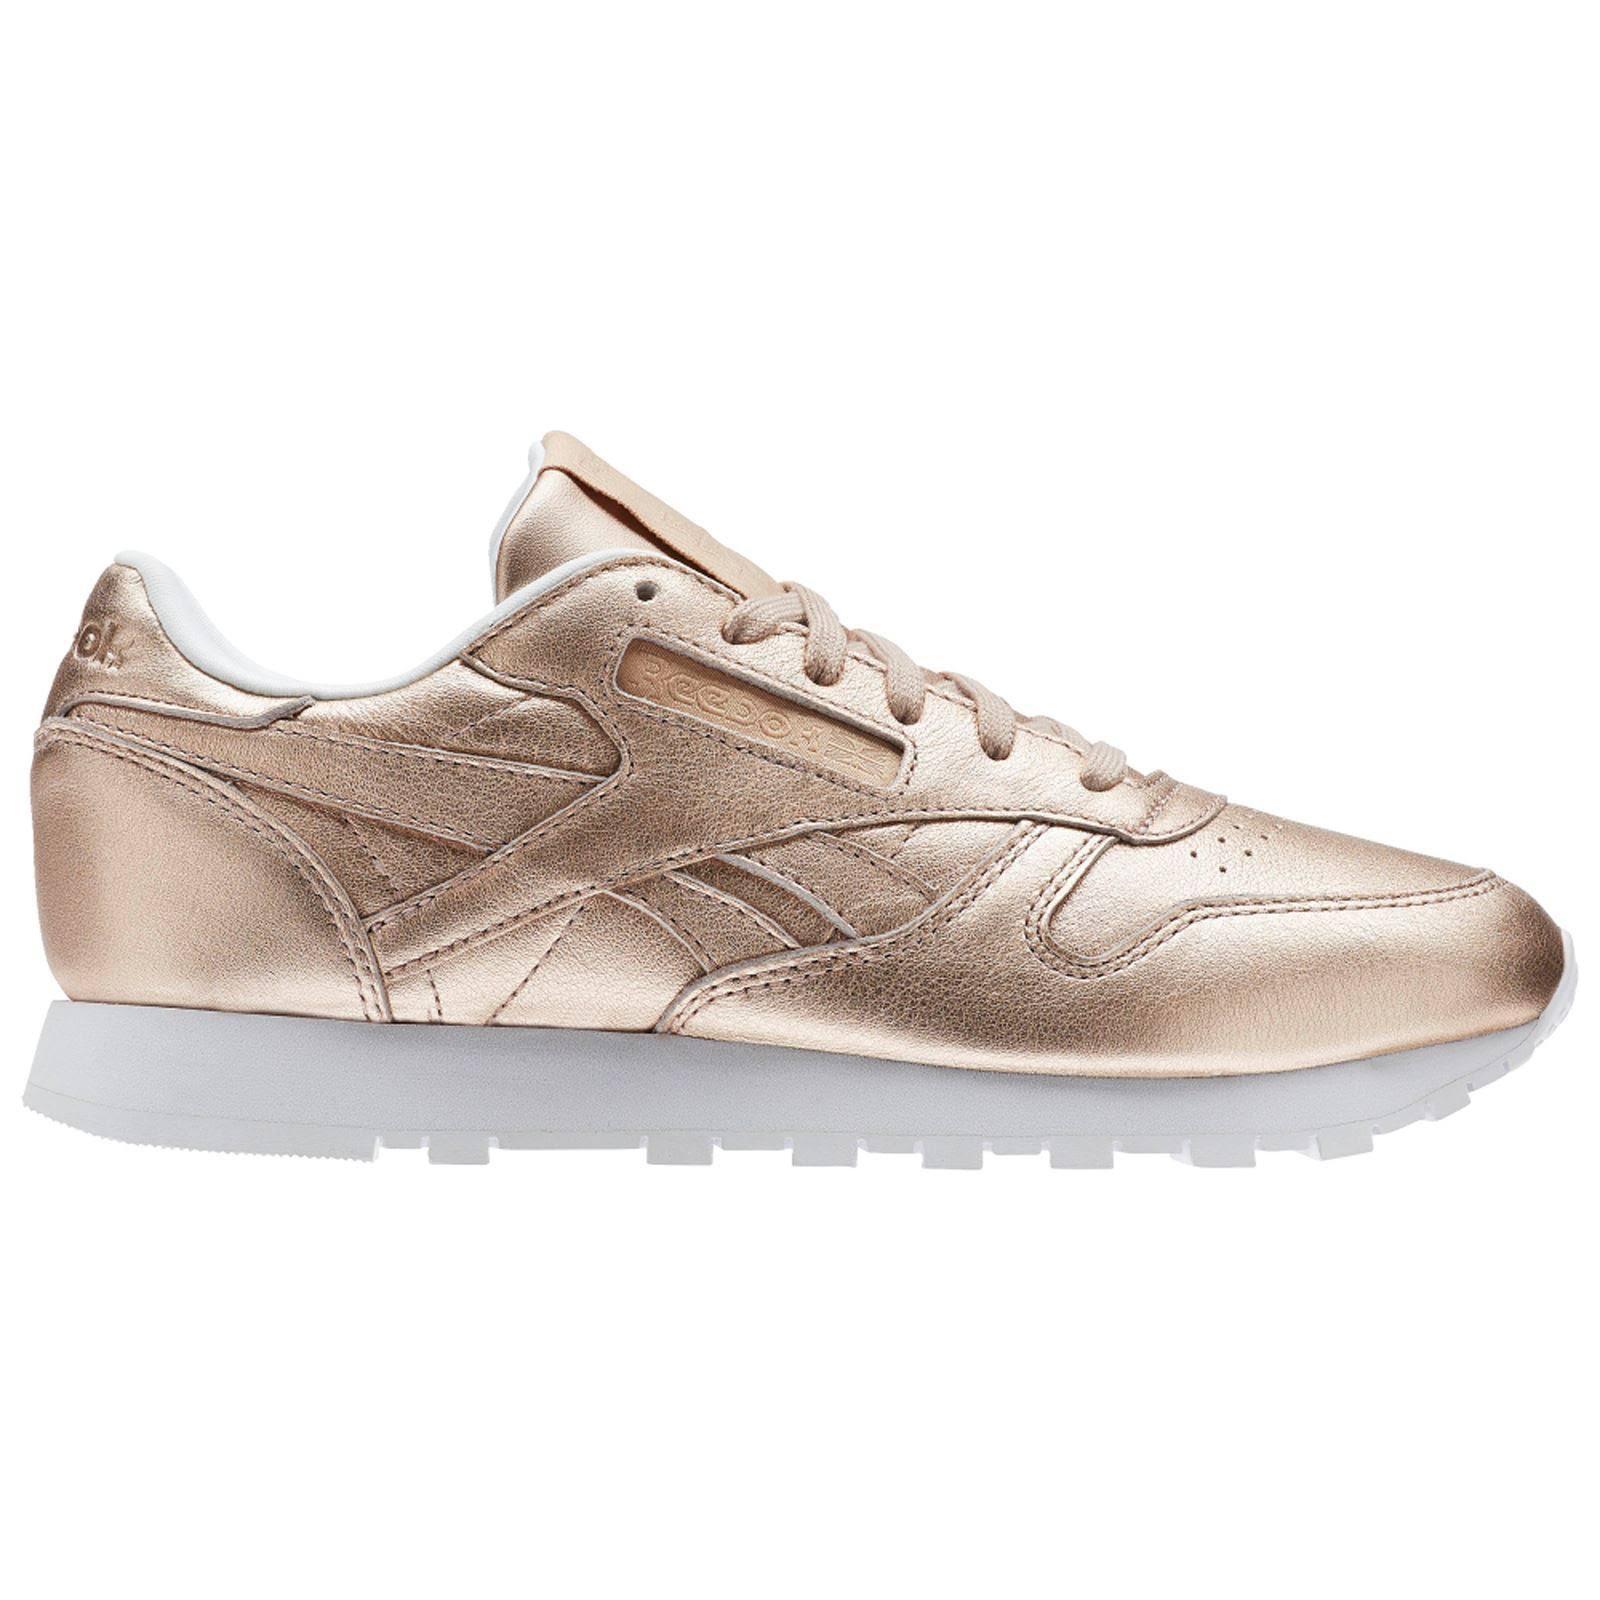 Leather Reebok Rosa Metals Classic Melted txdCshQr